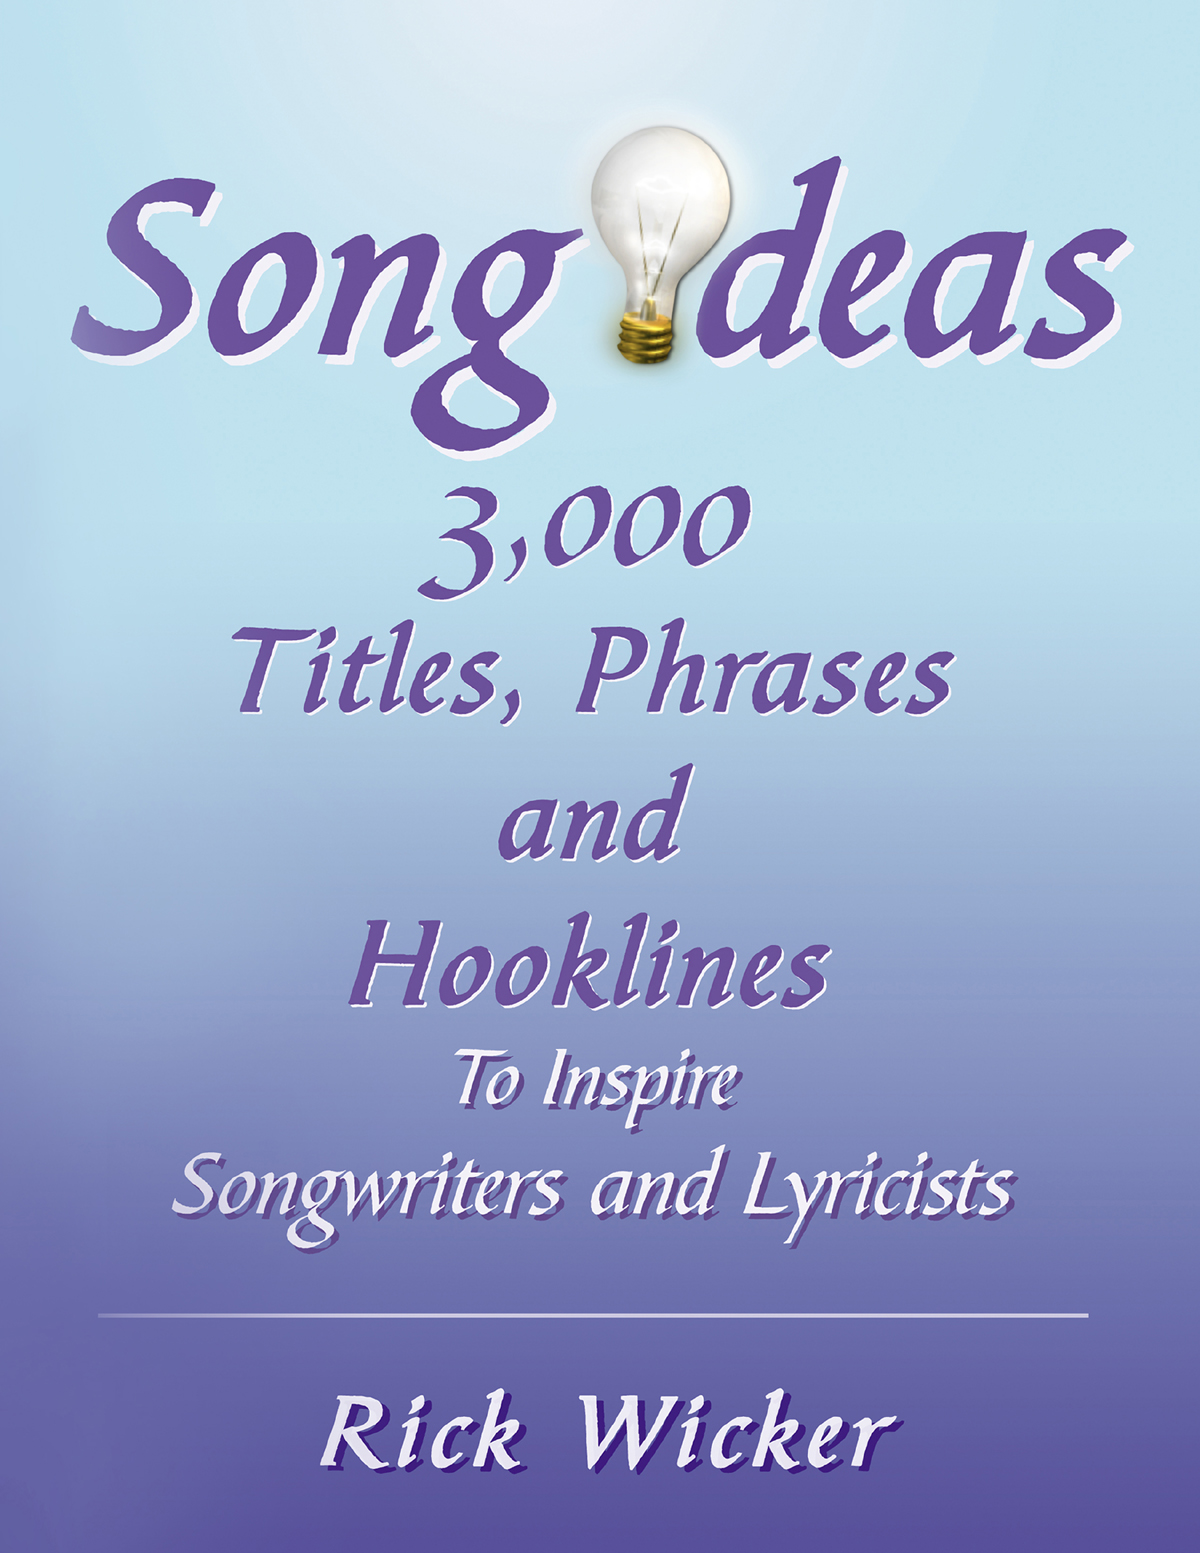 Song Ideas: 3,000 Titles, Phrases and Hooklines to Inspire Songwriters and Lyricists